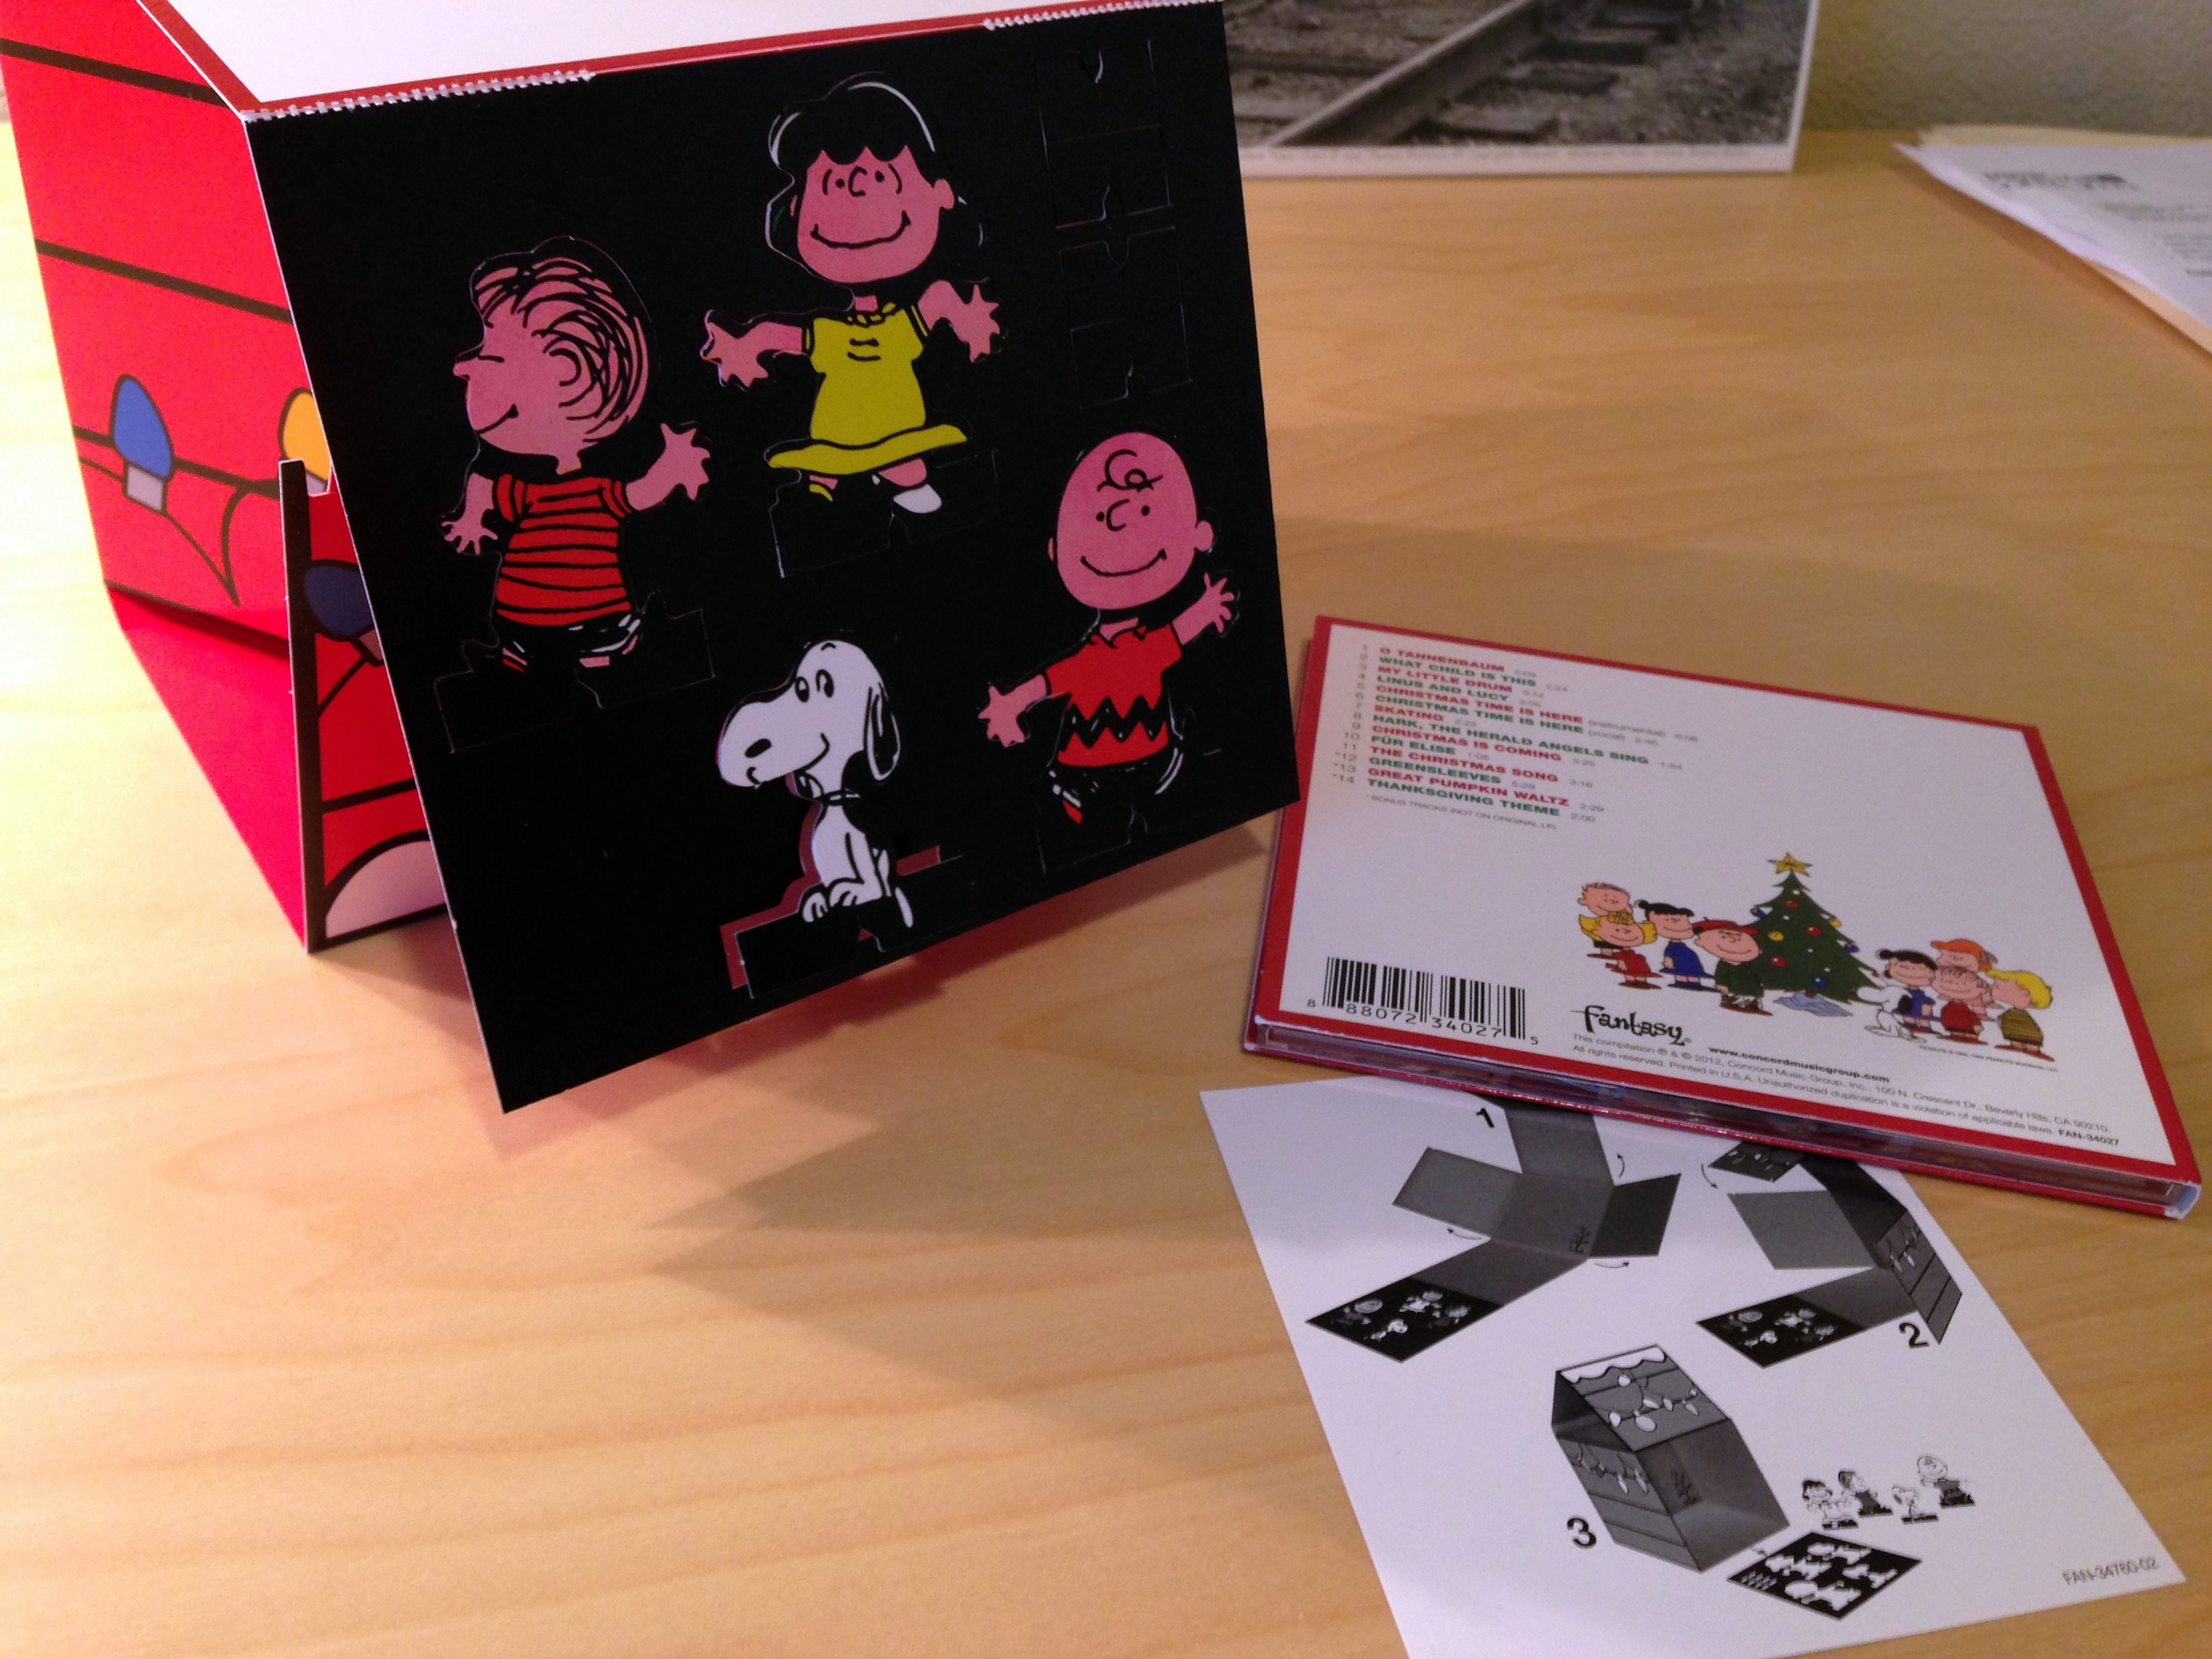 Charlie Brown Christmas Soundtrack.Check Out The Snoopy Doghouse Edition Of A Charlie Brown